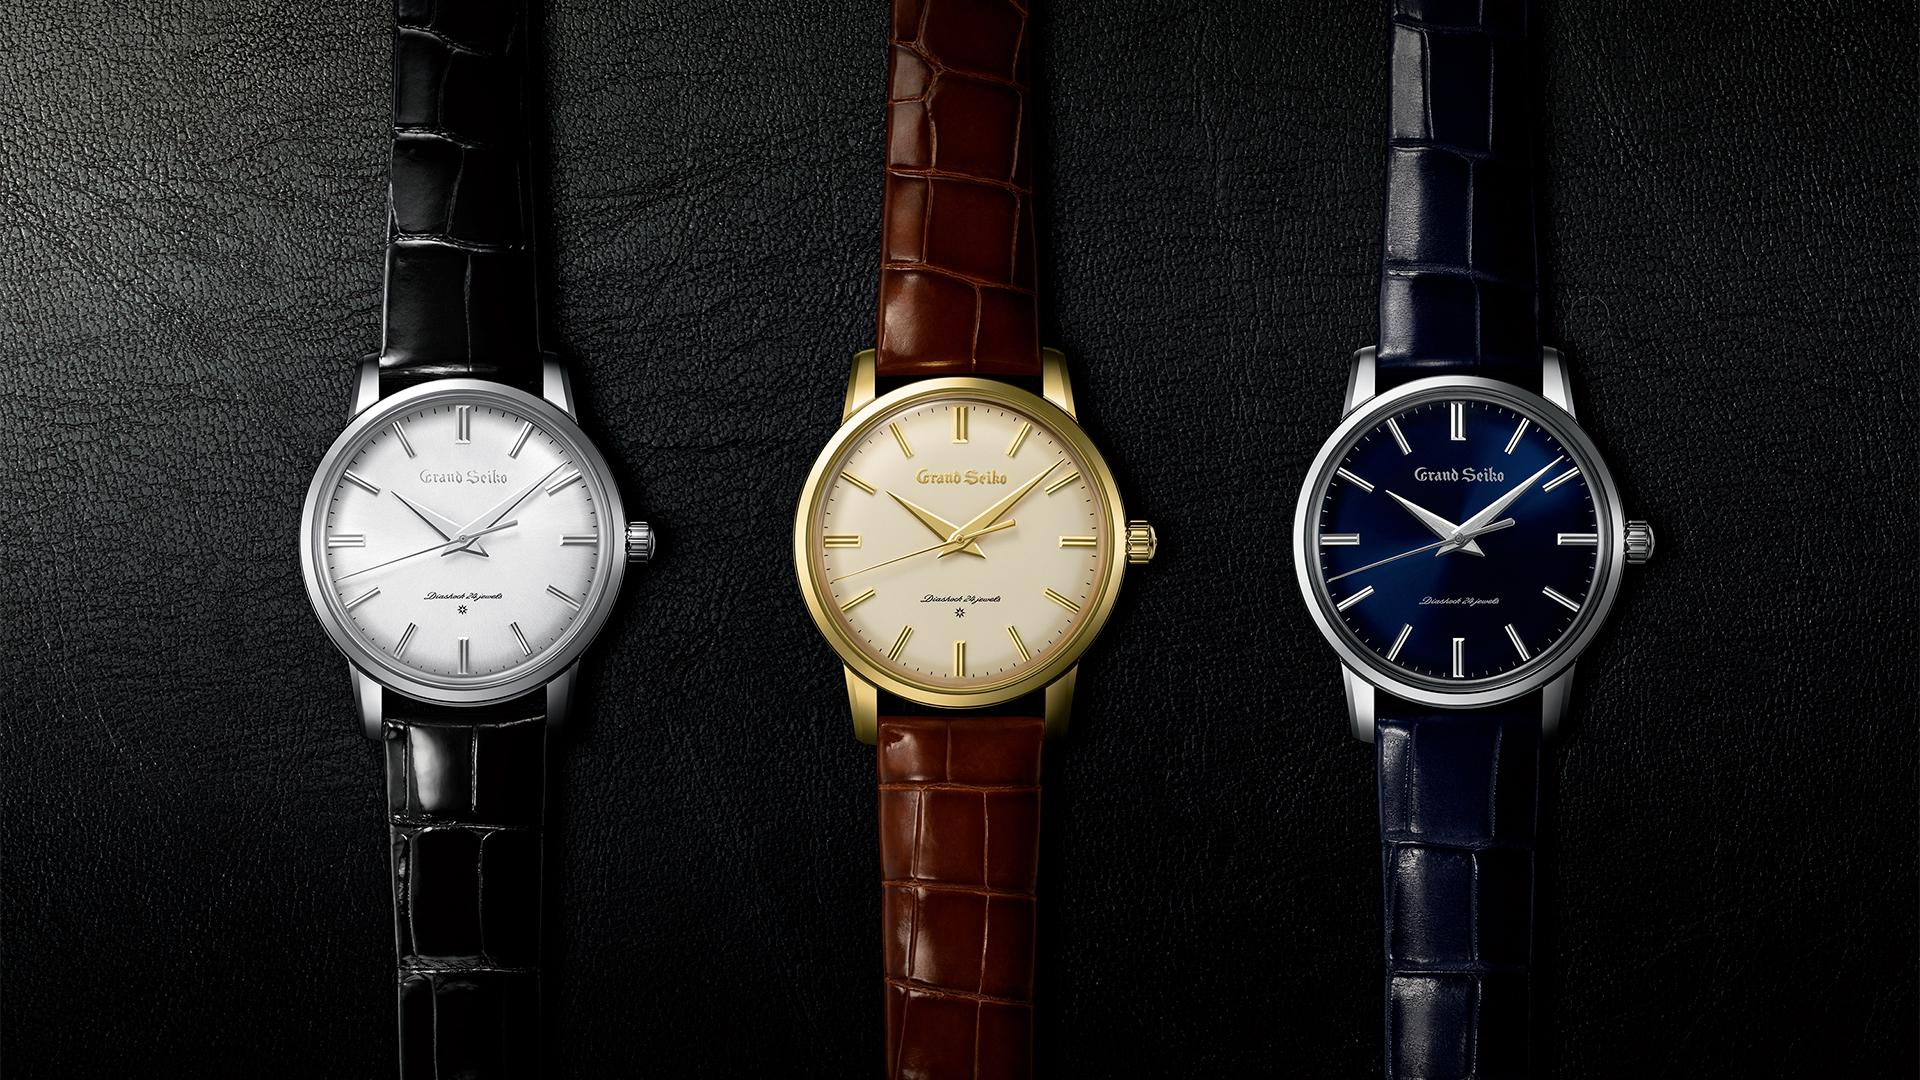 Grand Seiko Elegance 1960 watch collection